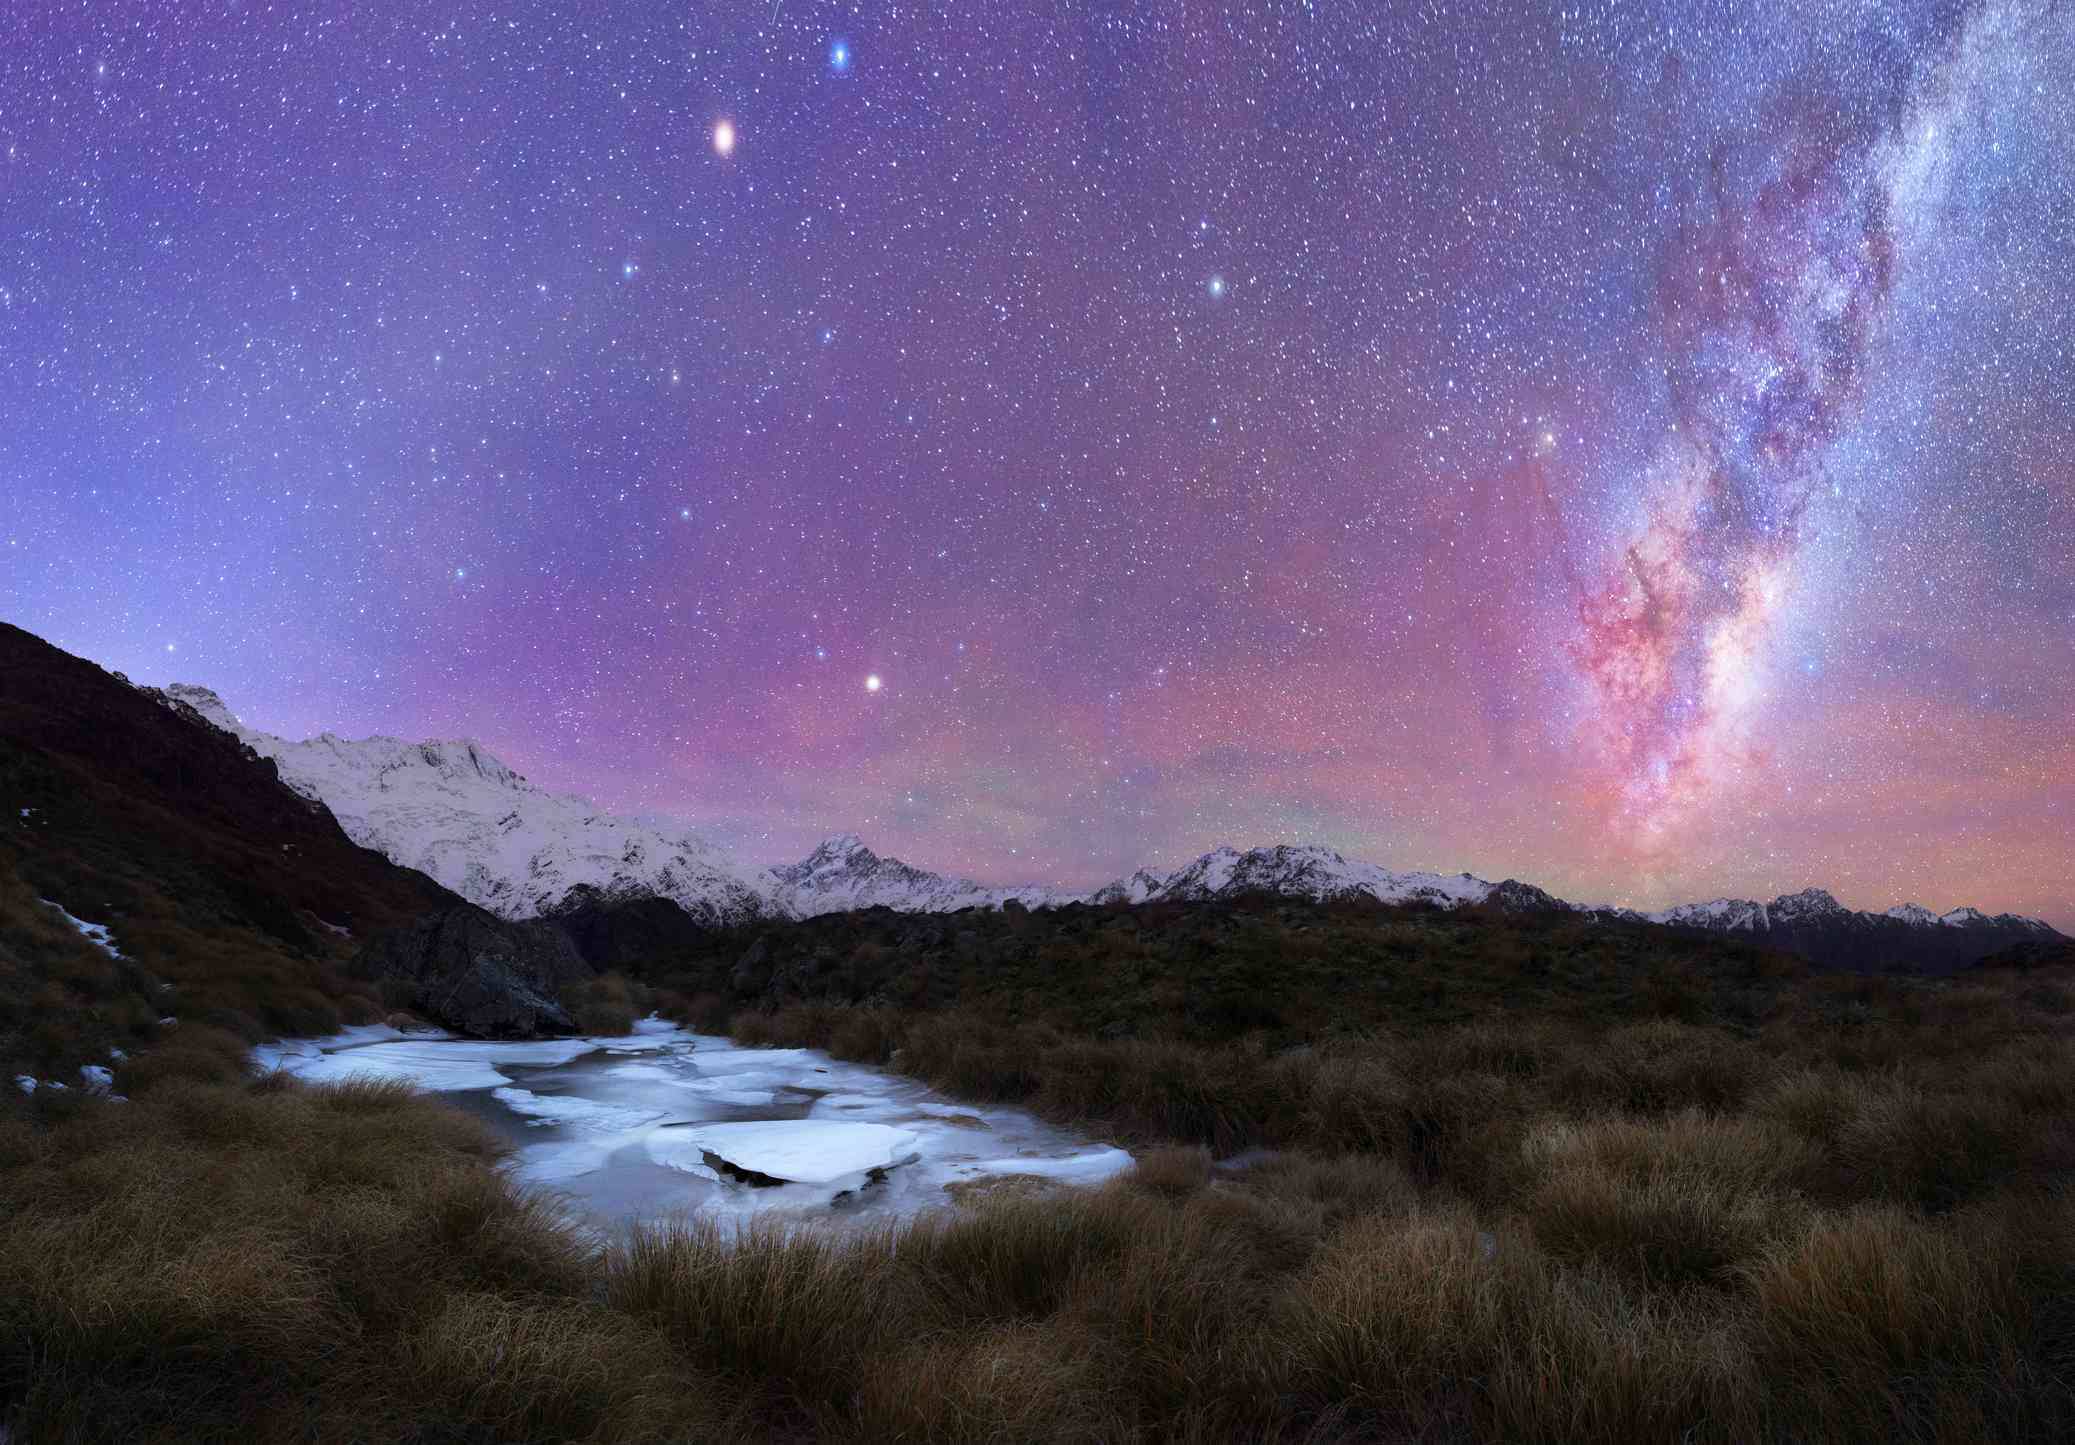 purple night sky with stars and constellations and snow-covered mountains